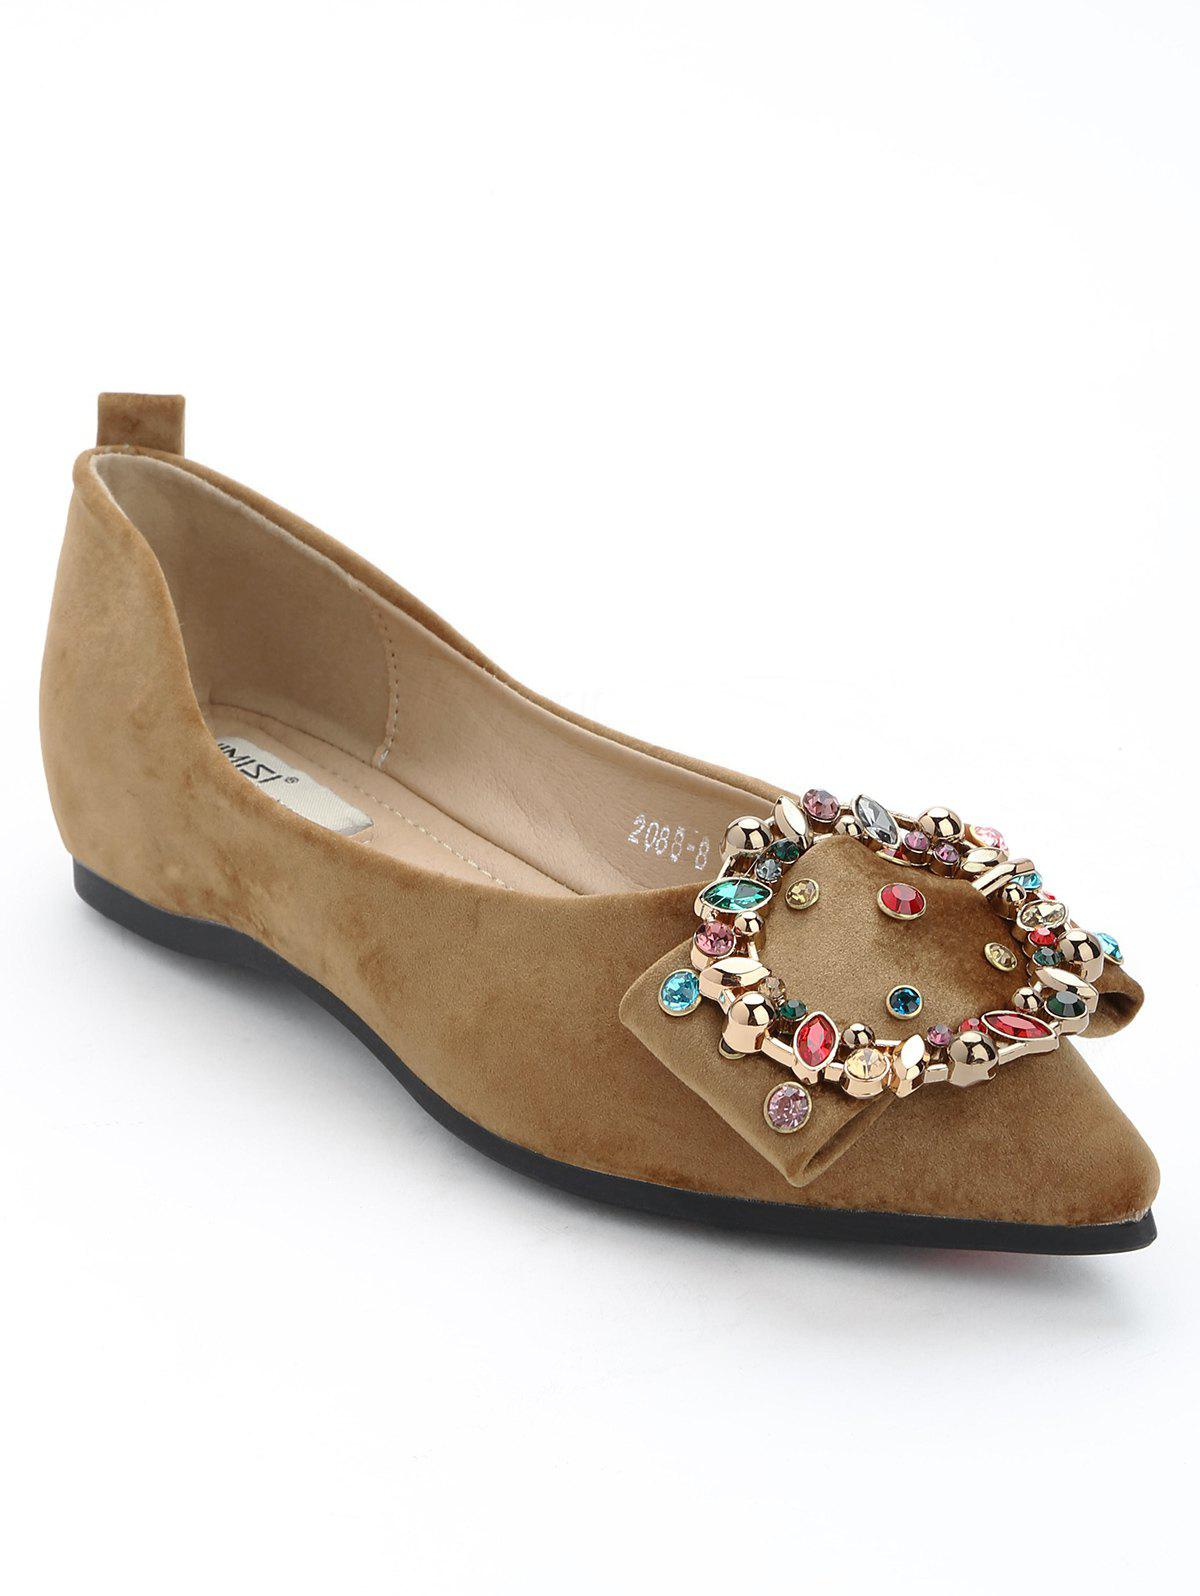 New Casual Buckled Beading Flats